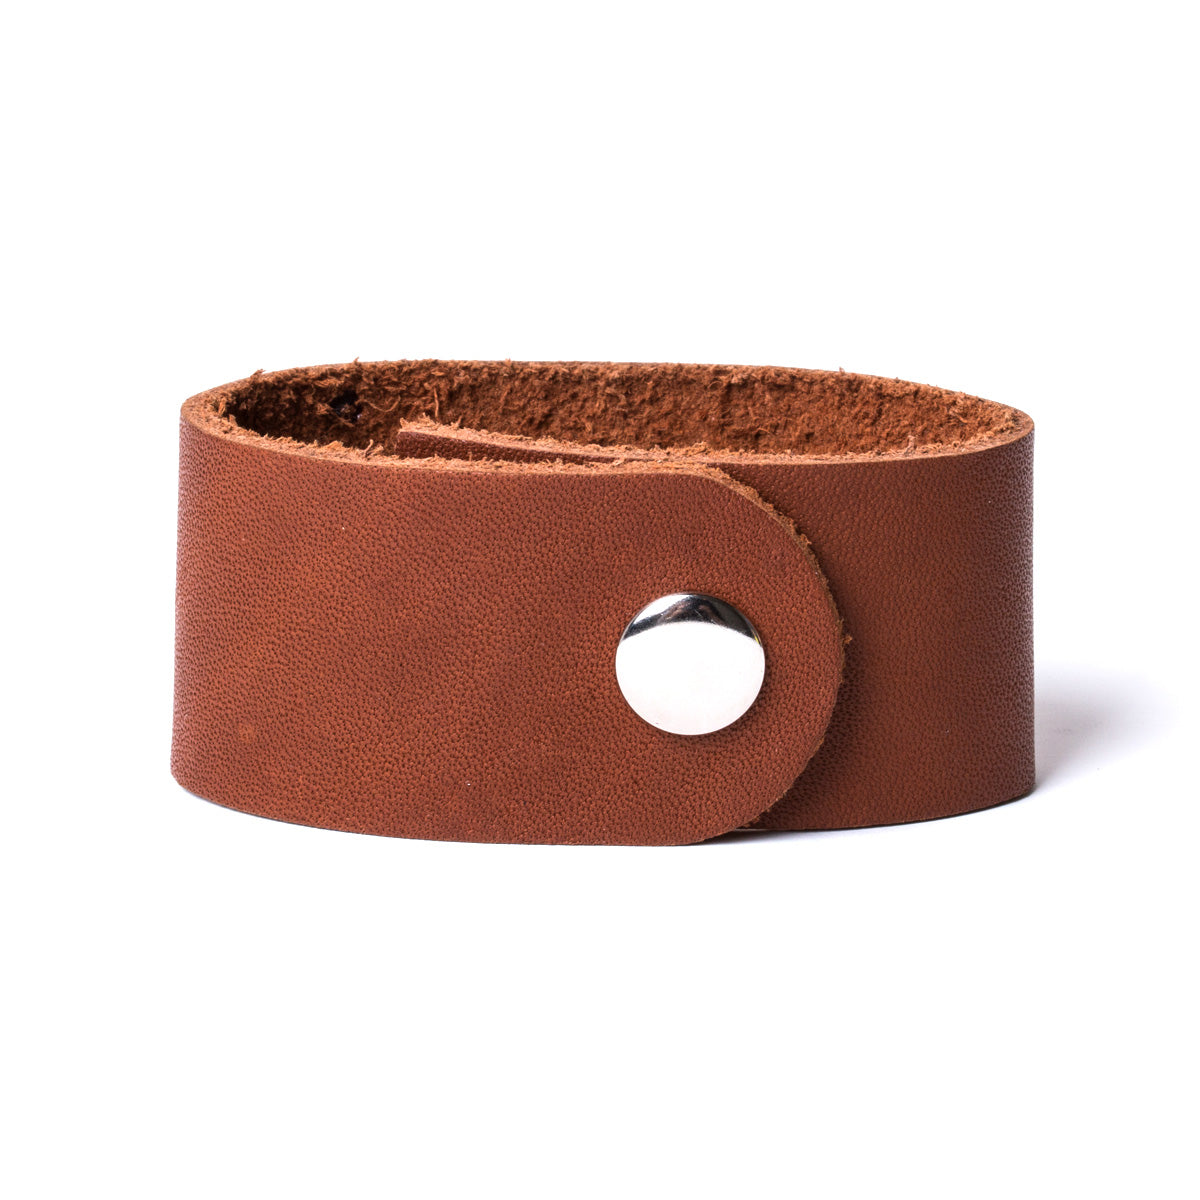 Bespoke Thick Leather Cuff